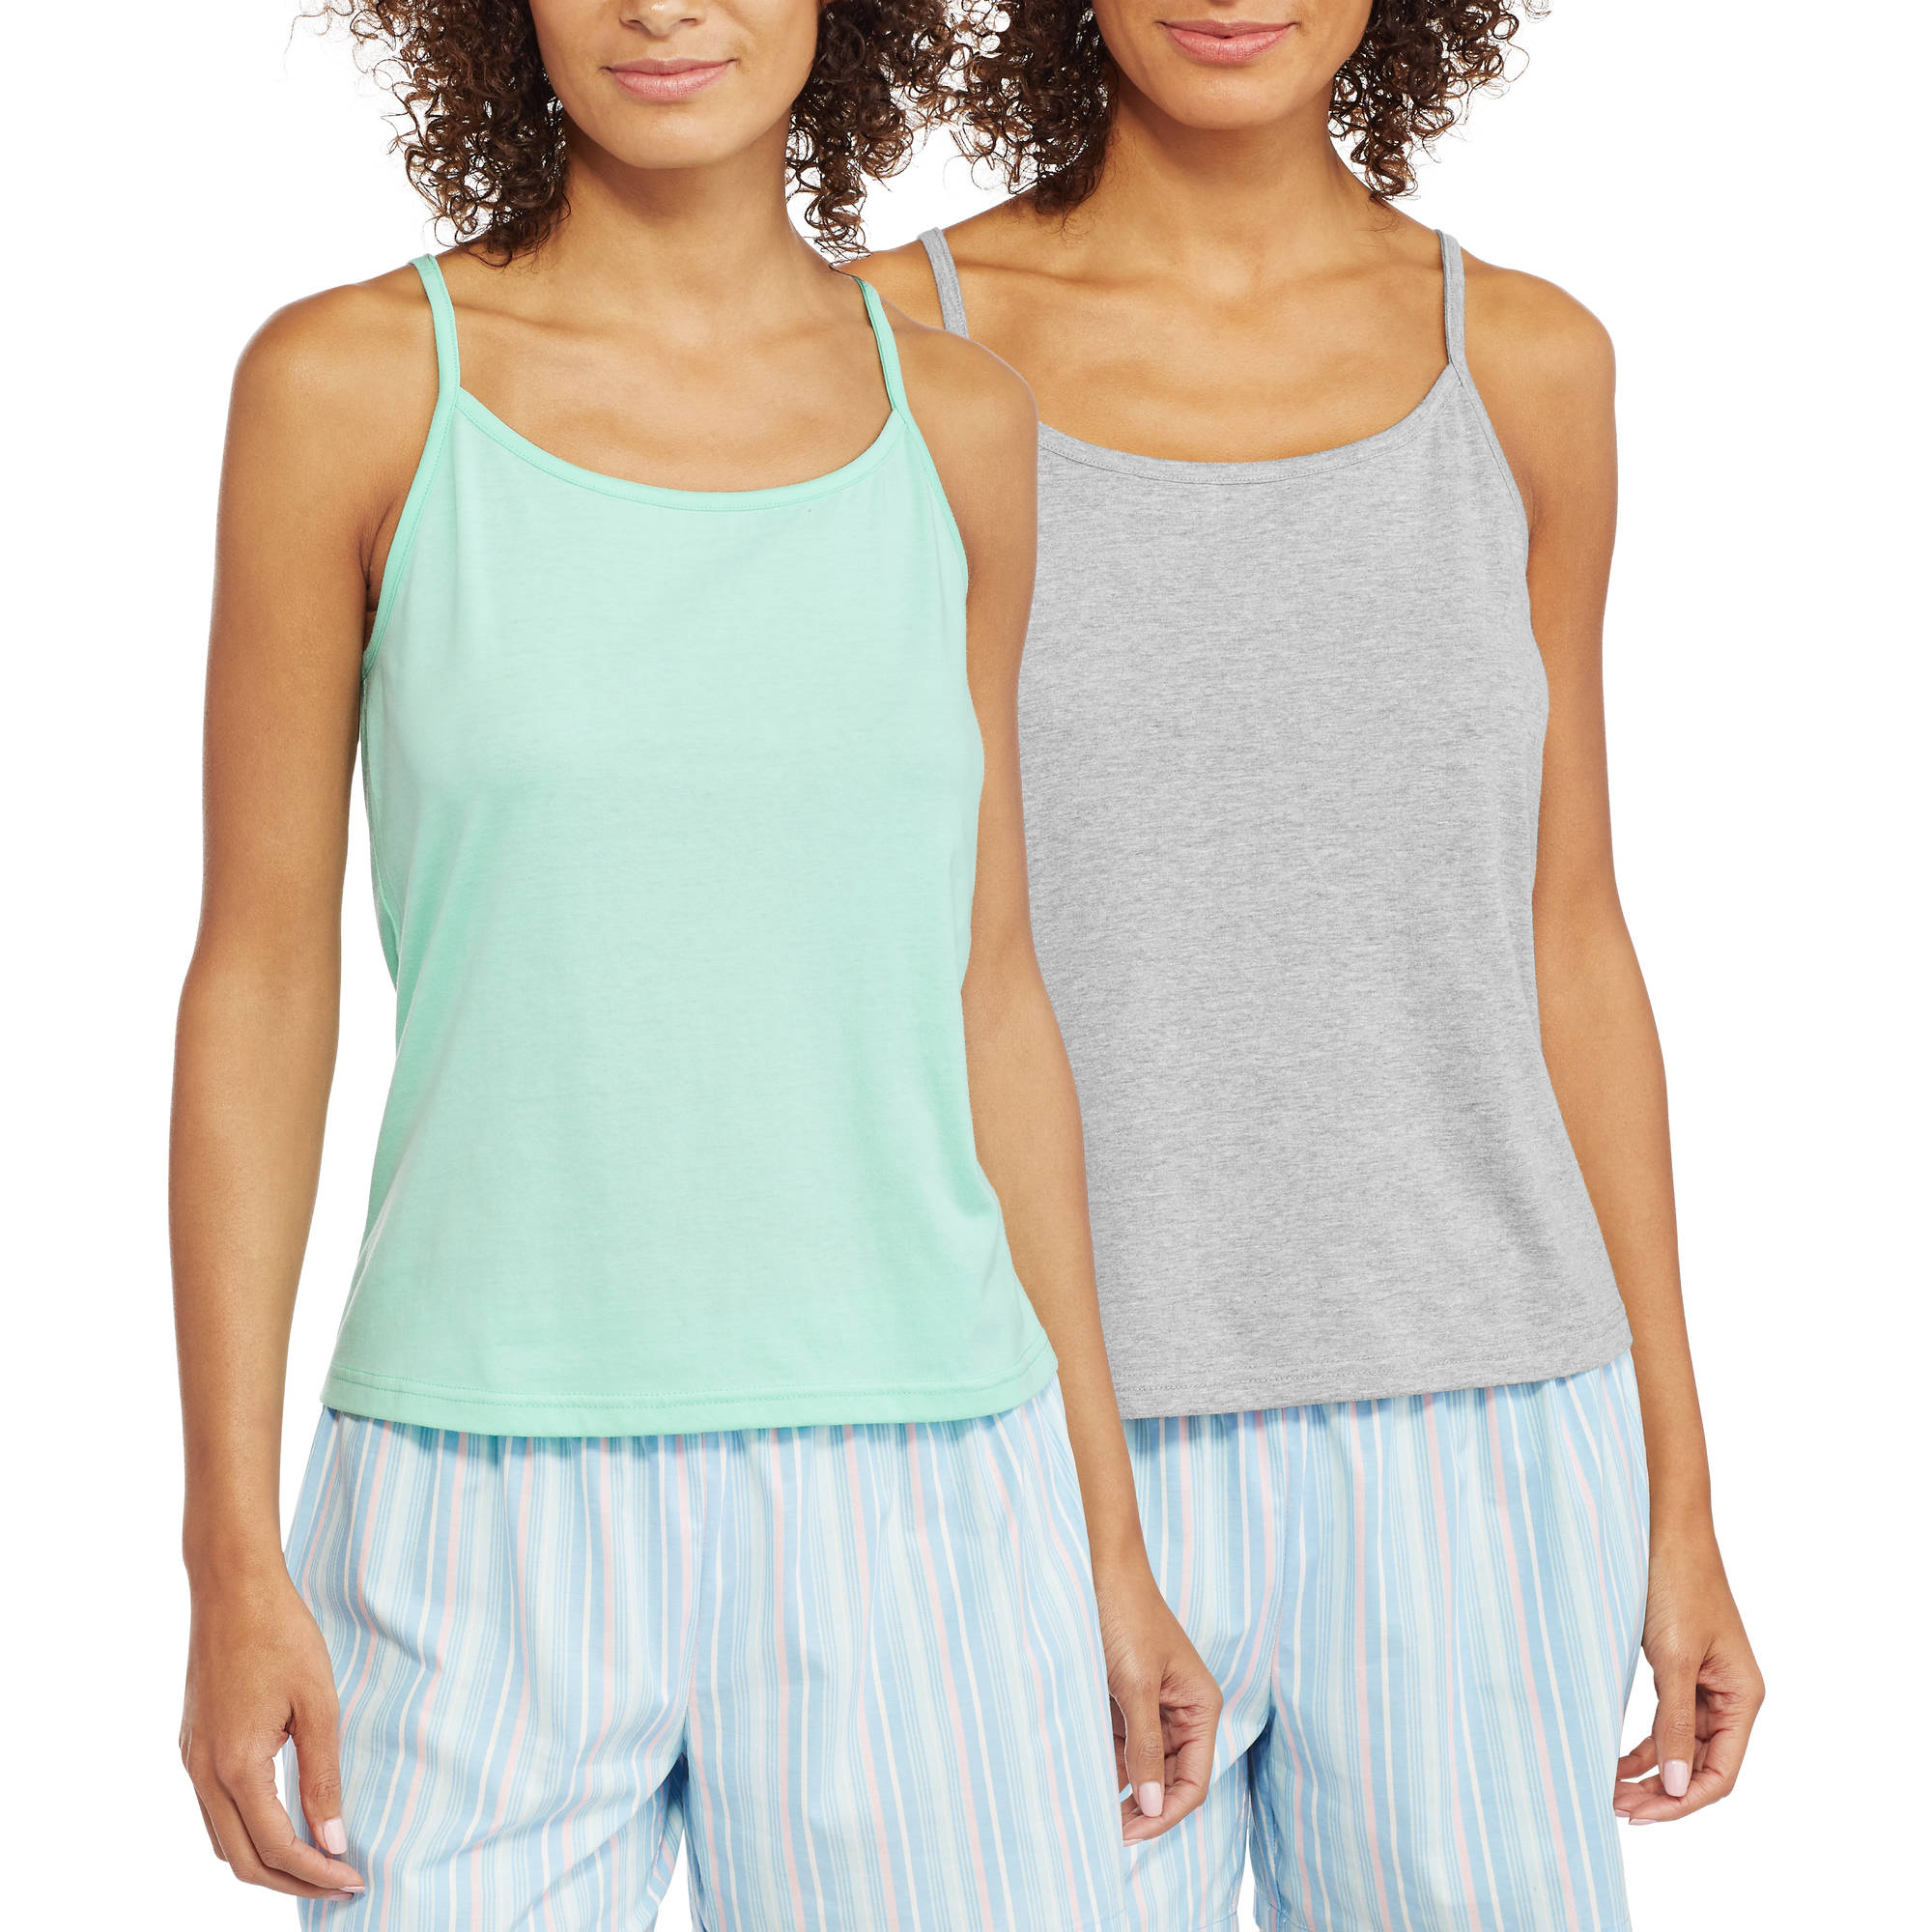 Hanes Women's Knit Sleep Cami - 2 Pack